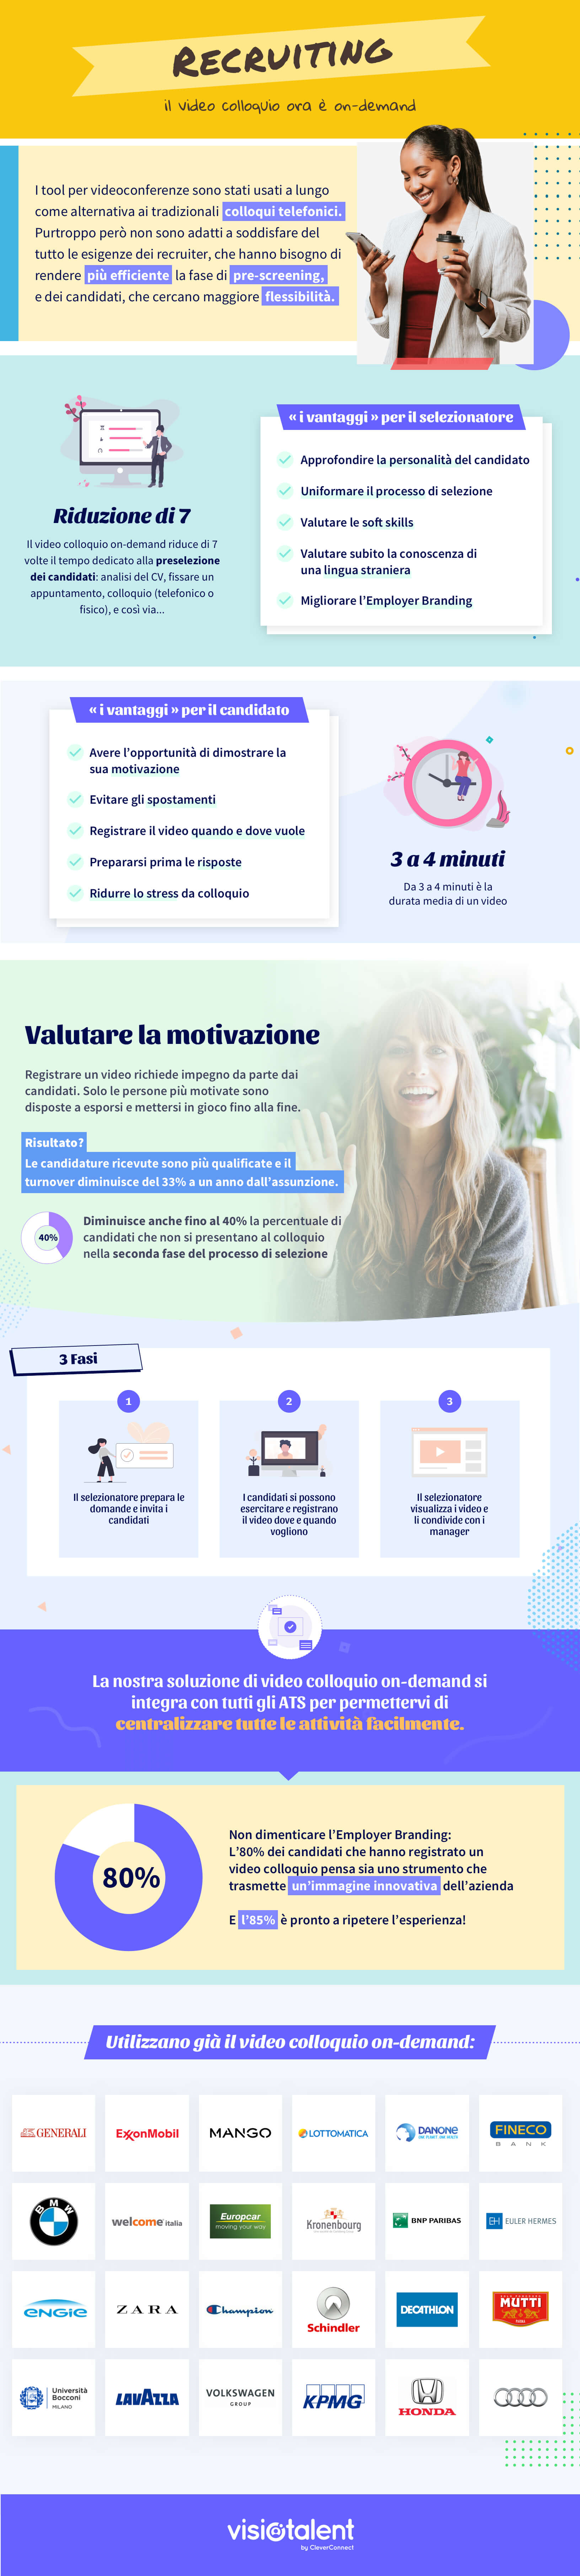 IT-infographie-visiotalent-2020